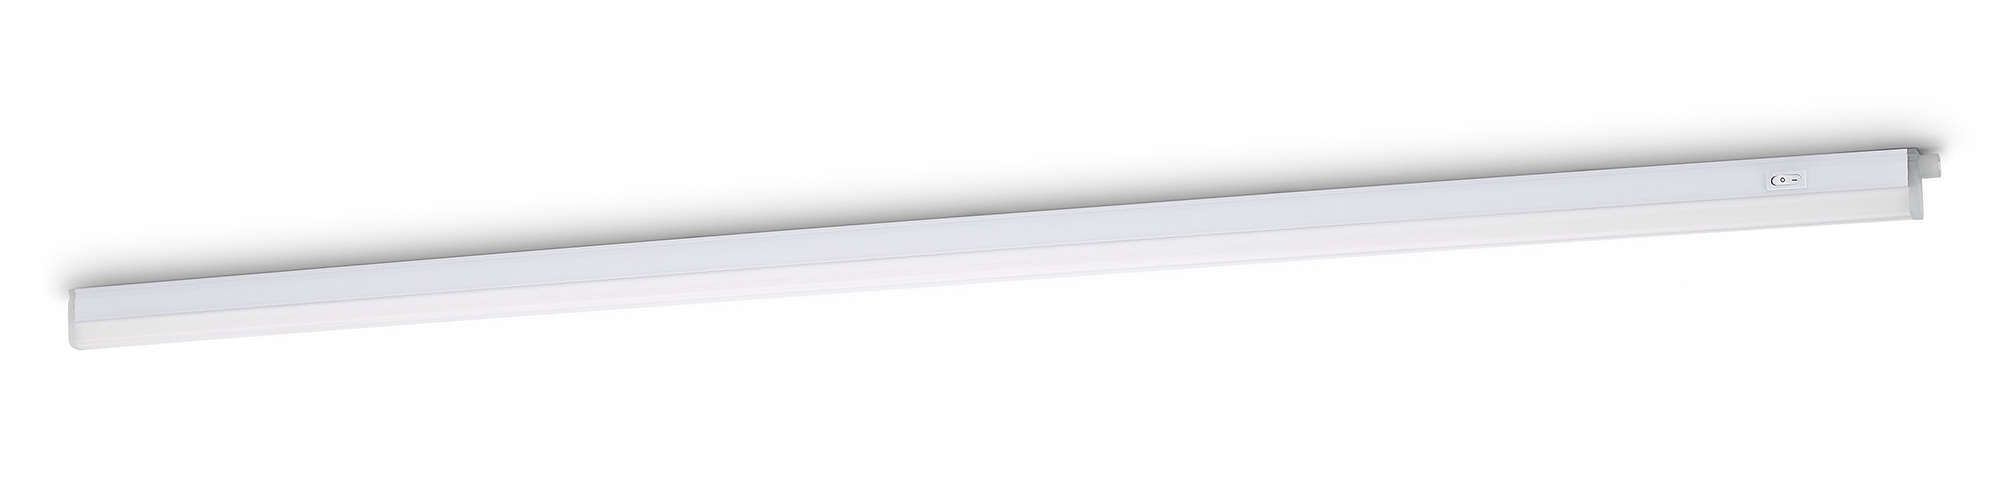 PHILIPS 850873116 LUMINARIA LINEAR LED 2700K 1x18W